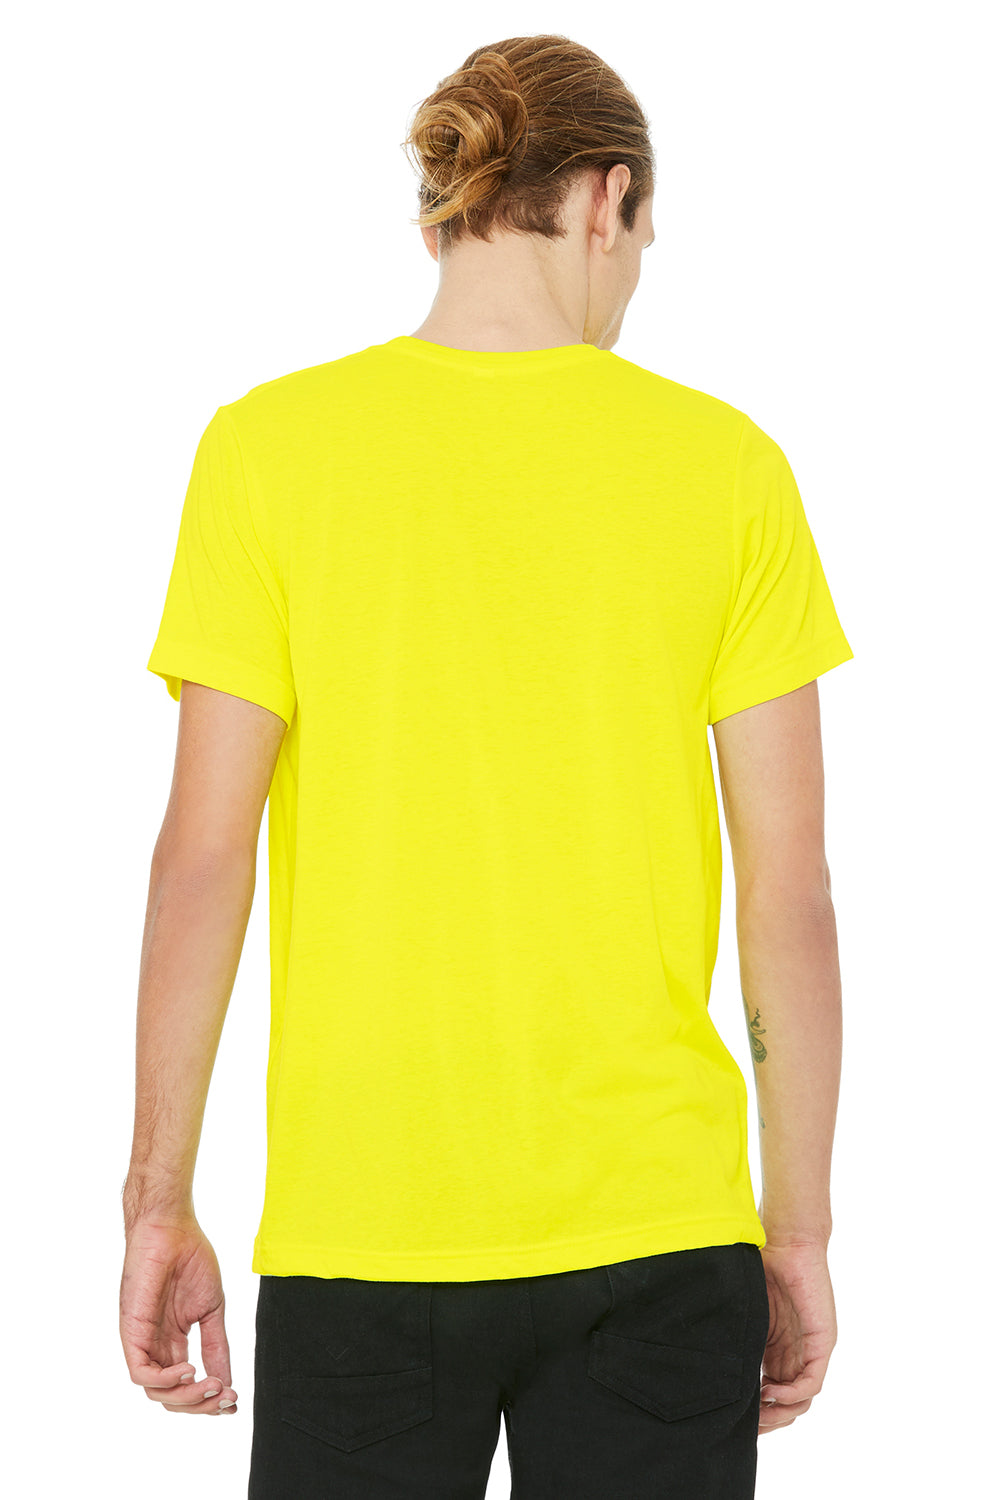 Bella + Canvas 3650 Mens Short Sleeve Crewneck T-Shirt Neon Yellow Back